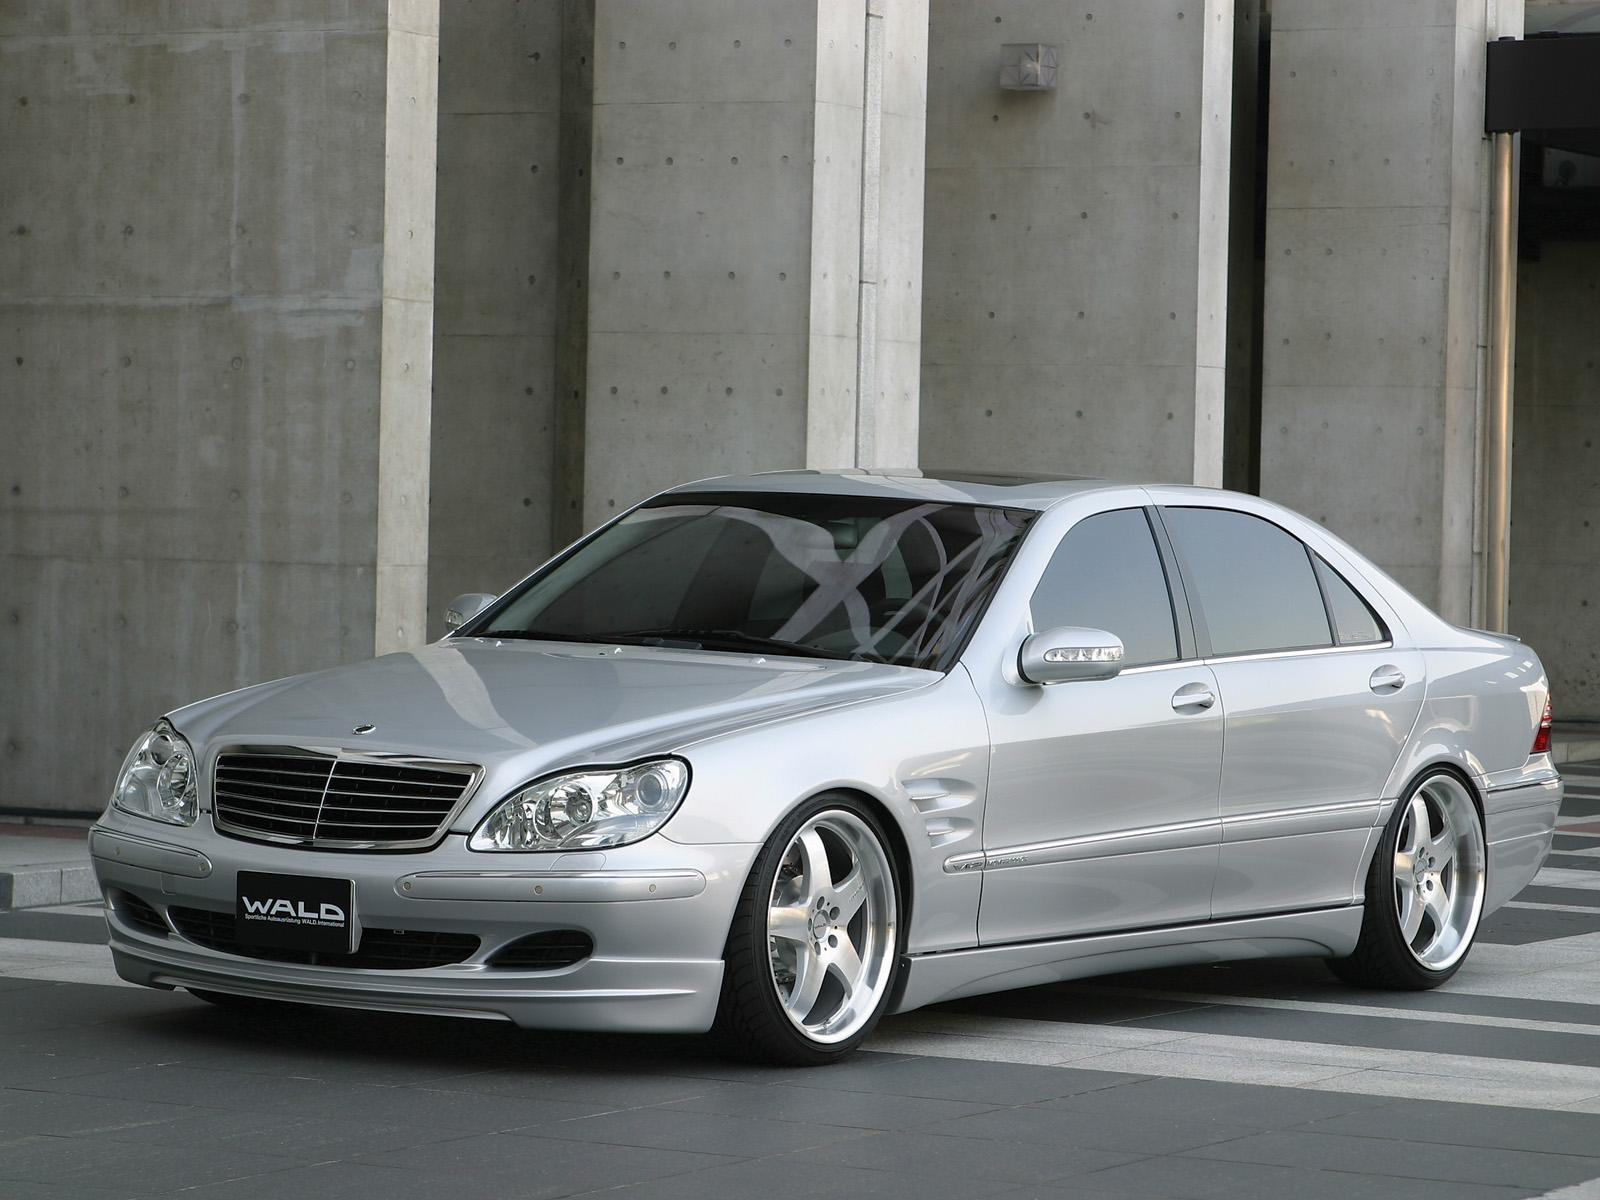 Wald Bercedes Benz S600 photo 26131